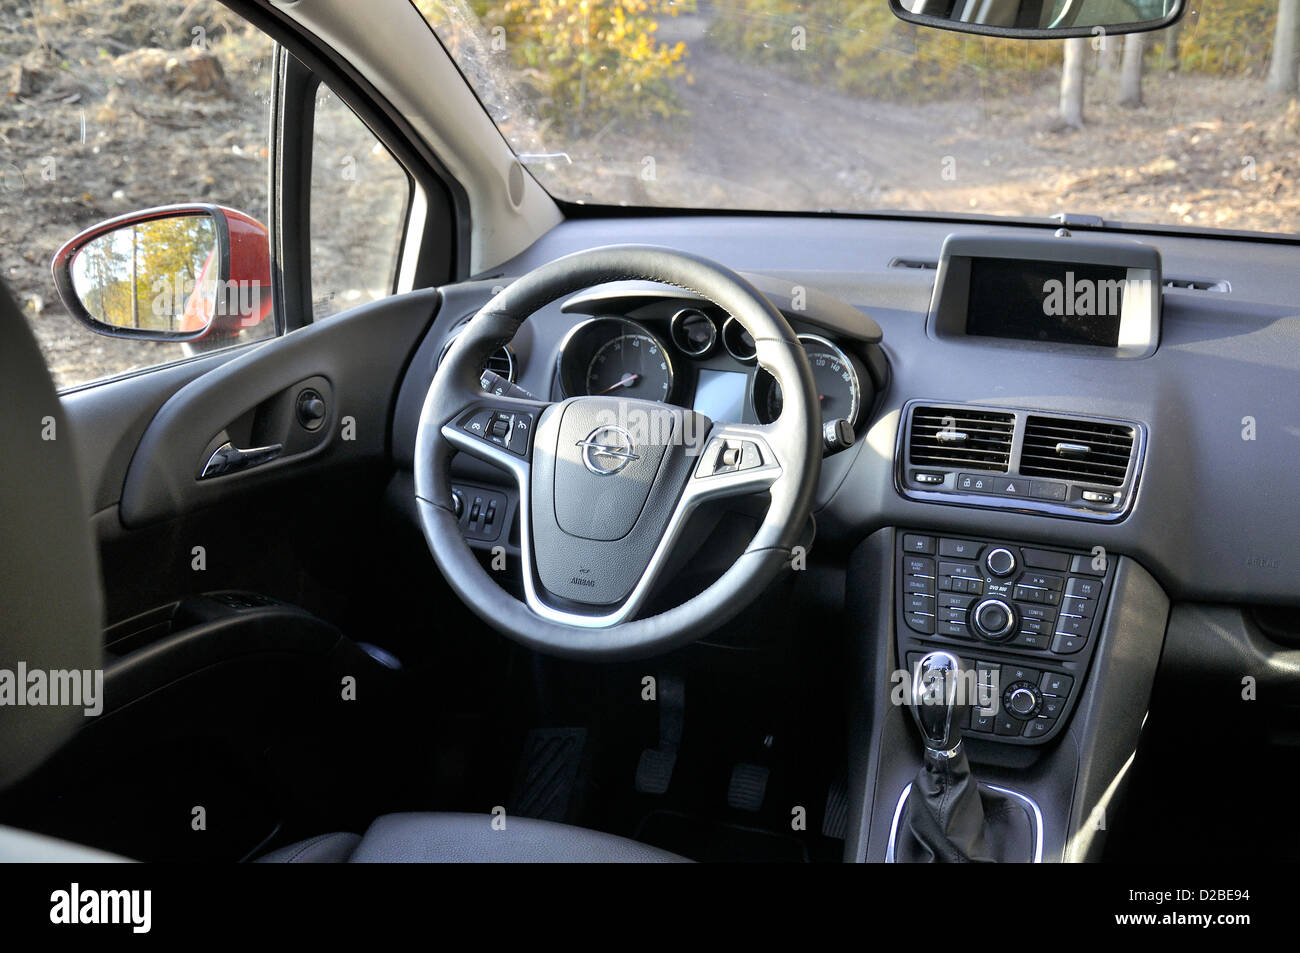 Opel Corsa C Interieur Opel Interior Stock Photos Opel Interior Stock Images Alamy